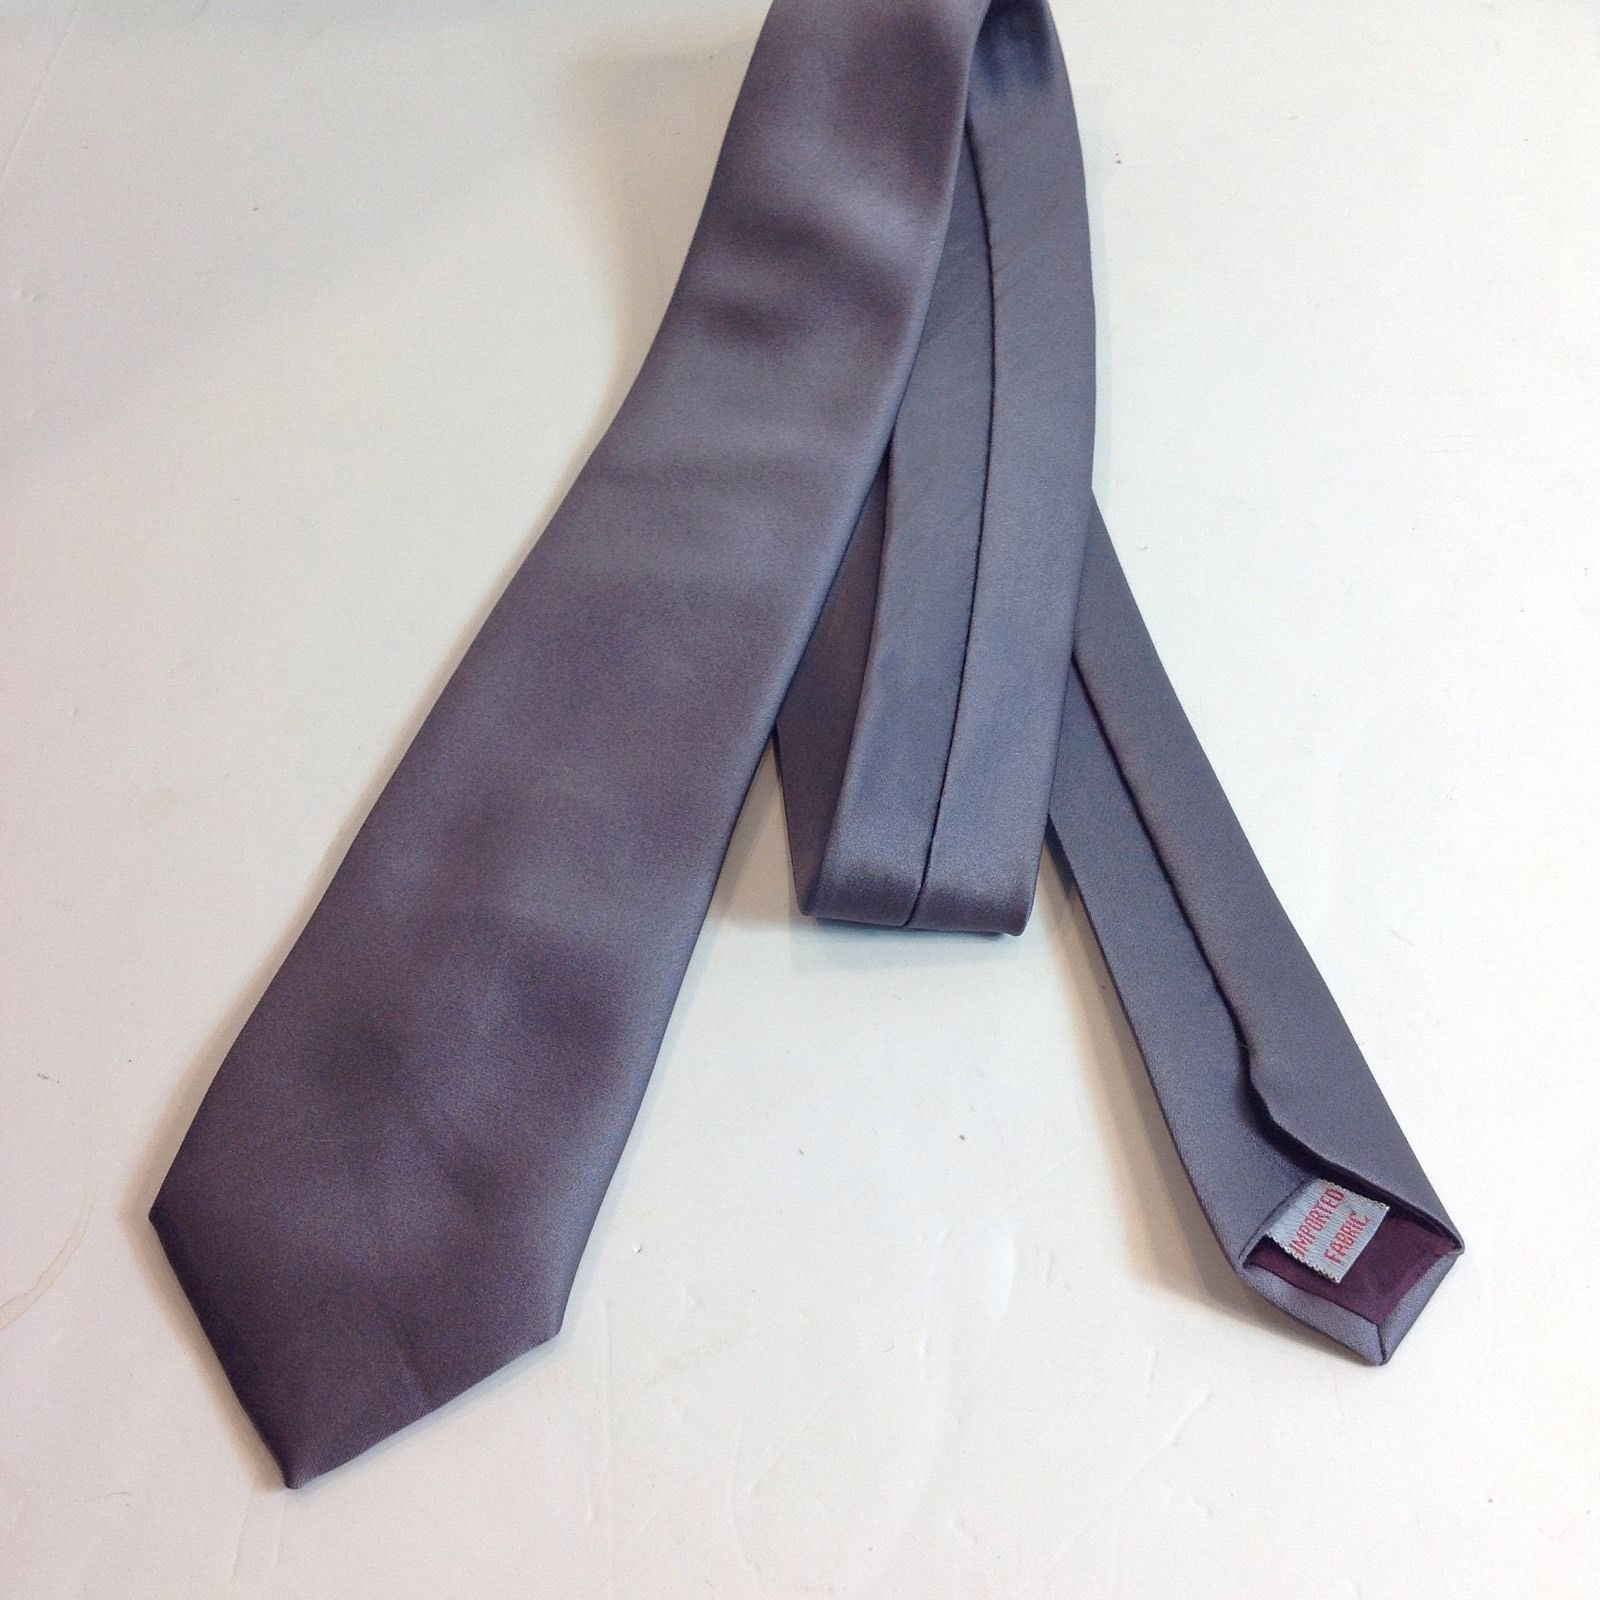 Primary image for Mark of California Imported Fabric 100% Polyester Silver Necktie Tie